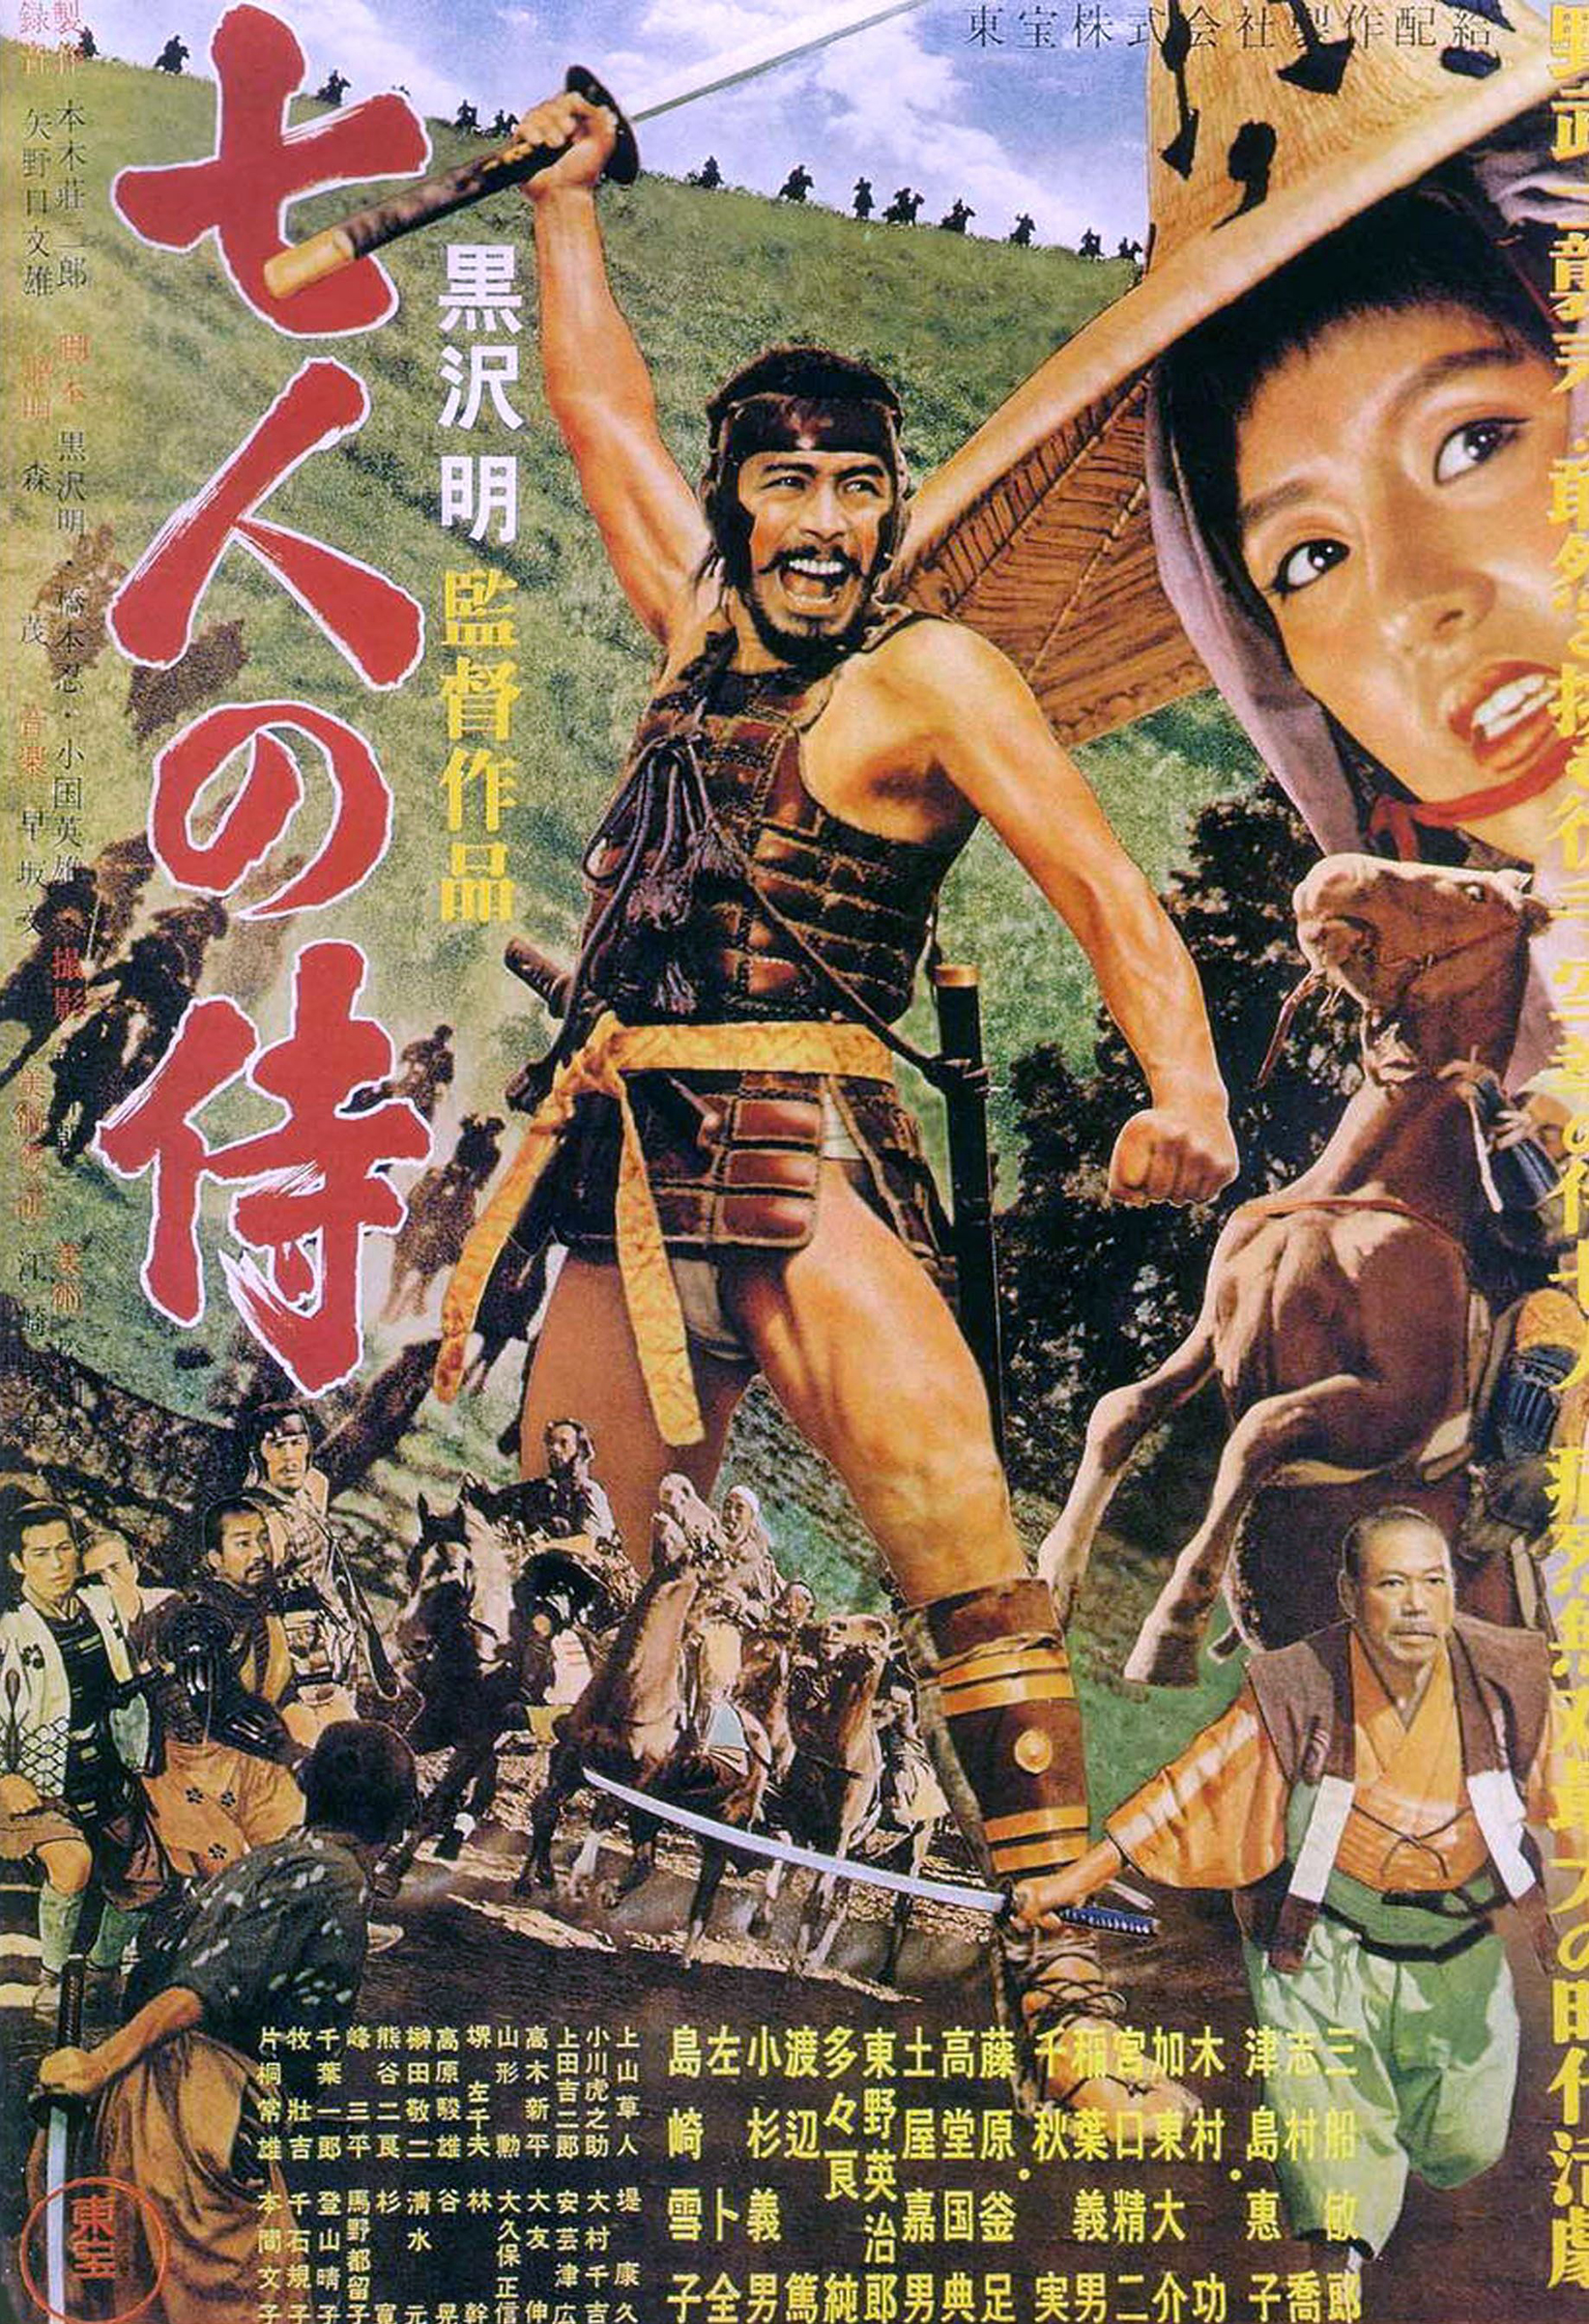 The movie poster for Seven Samurai (1954), which Hashimoto wrote with Kurosawa and Hideo Oguni